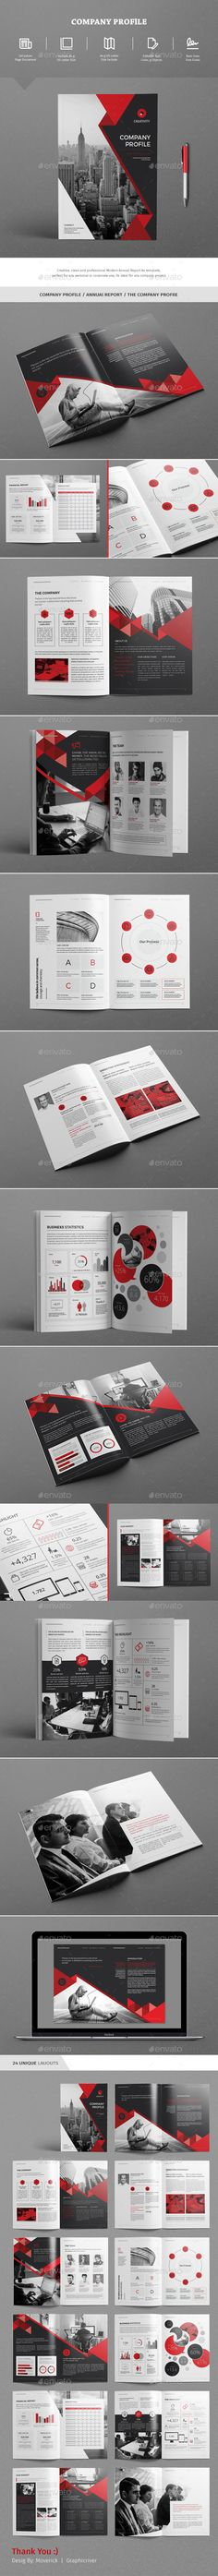 The Company Profile Brochure Template InDesign INDD